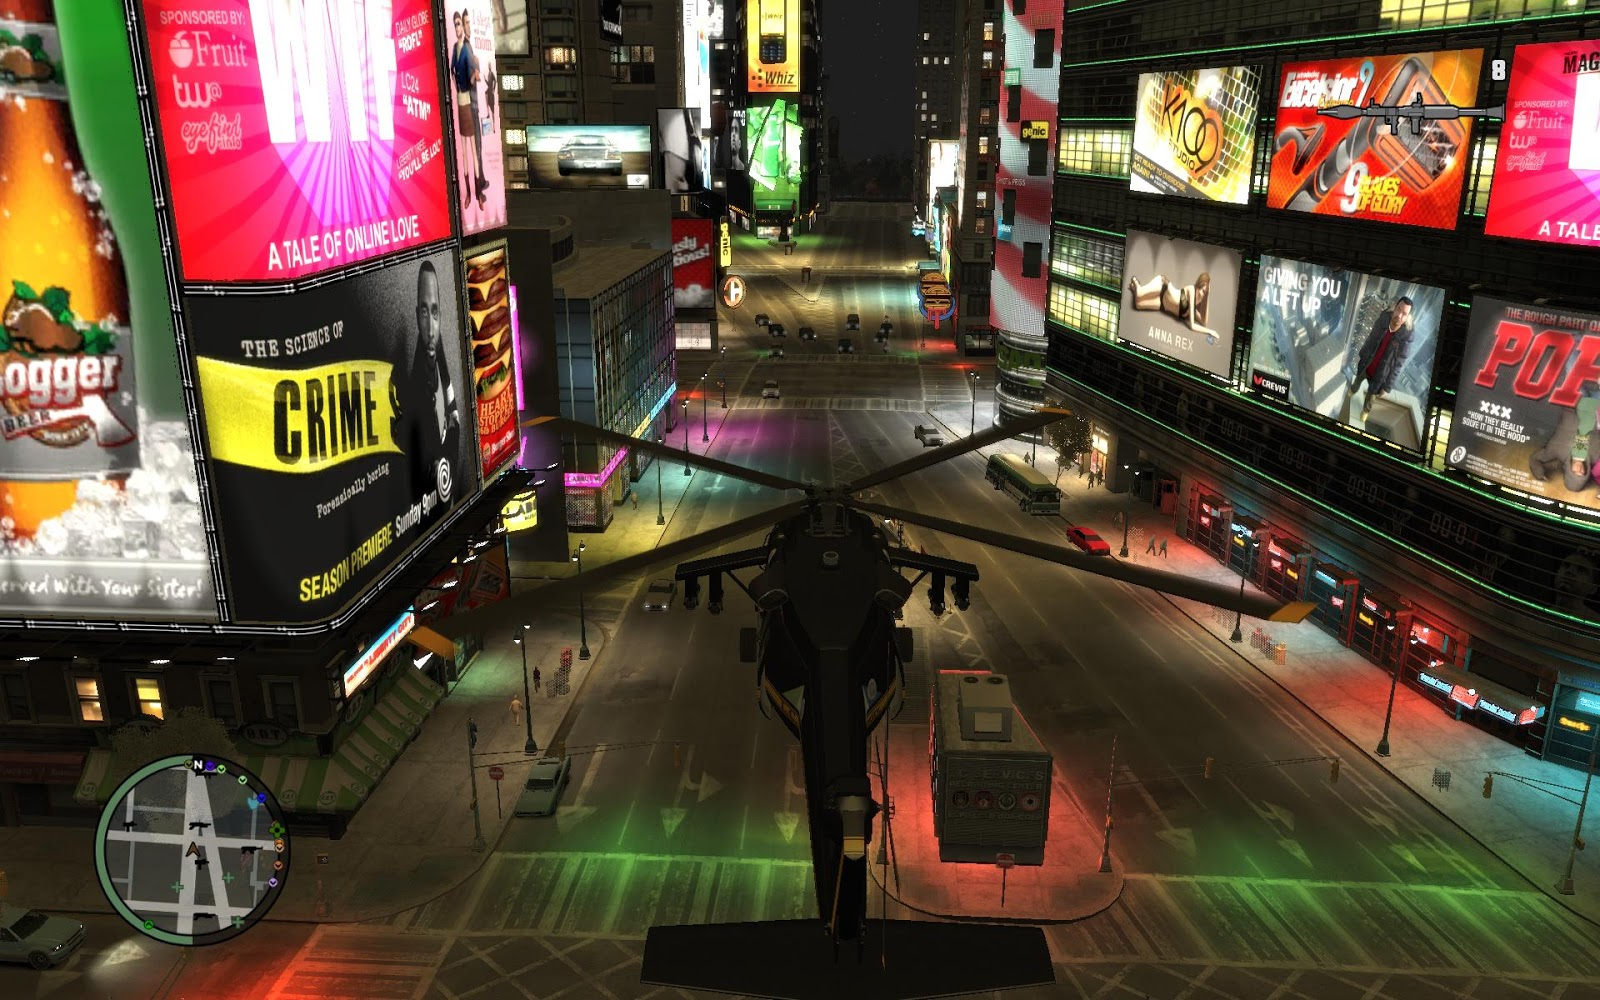 Free Download Gta 4 Full Game For Windows 8